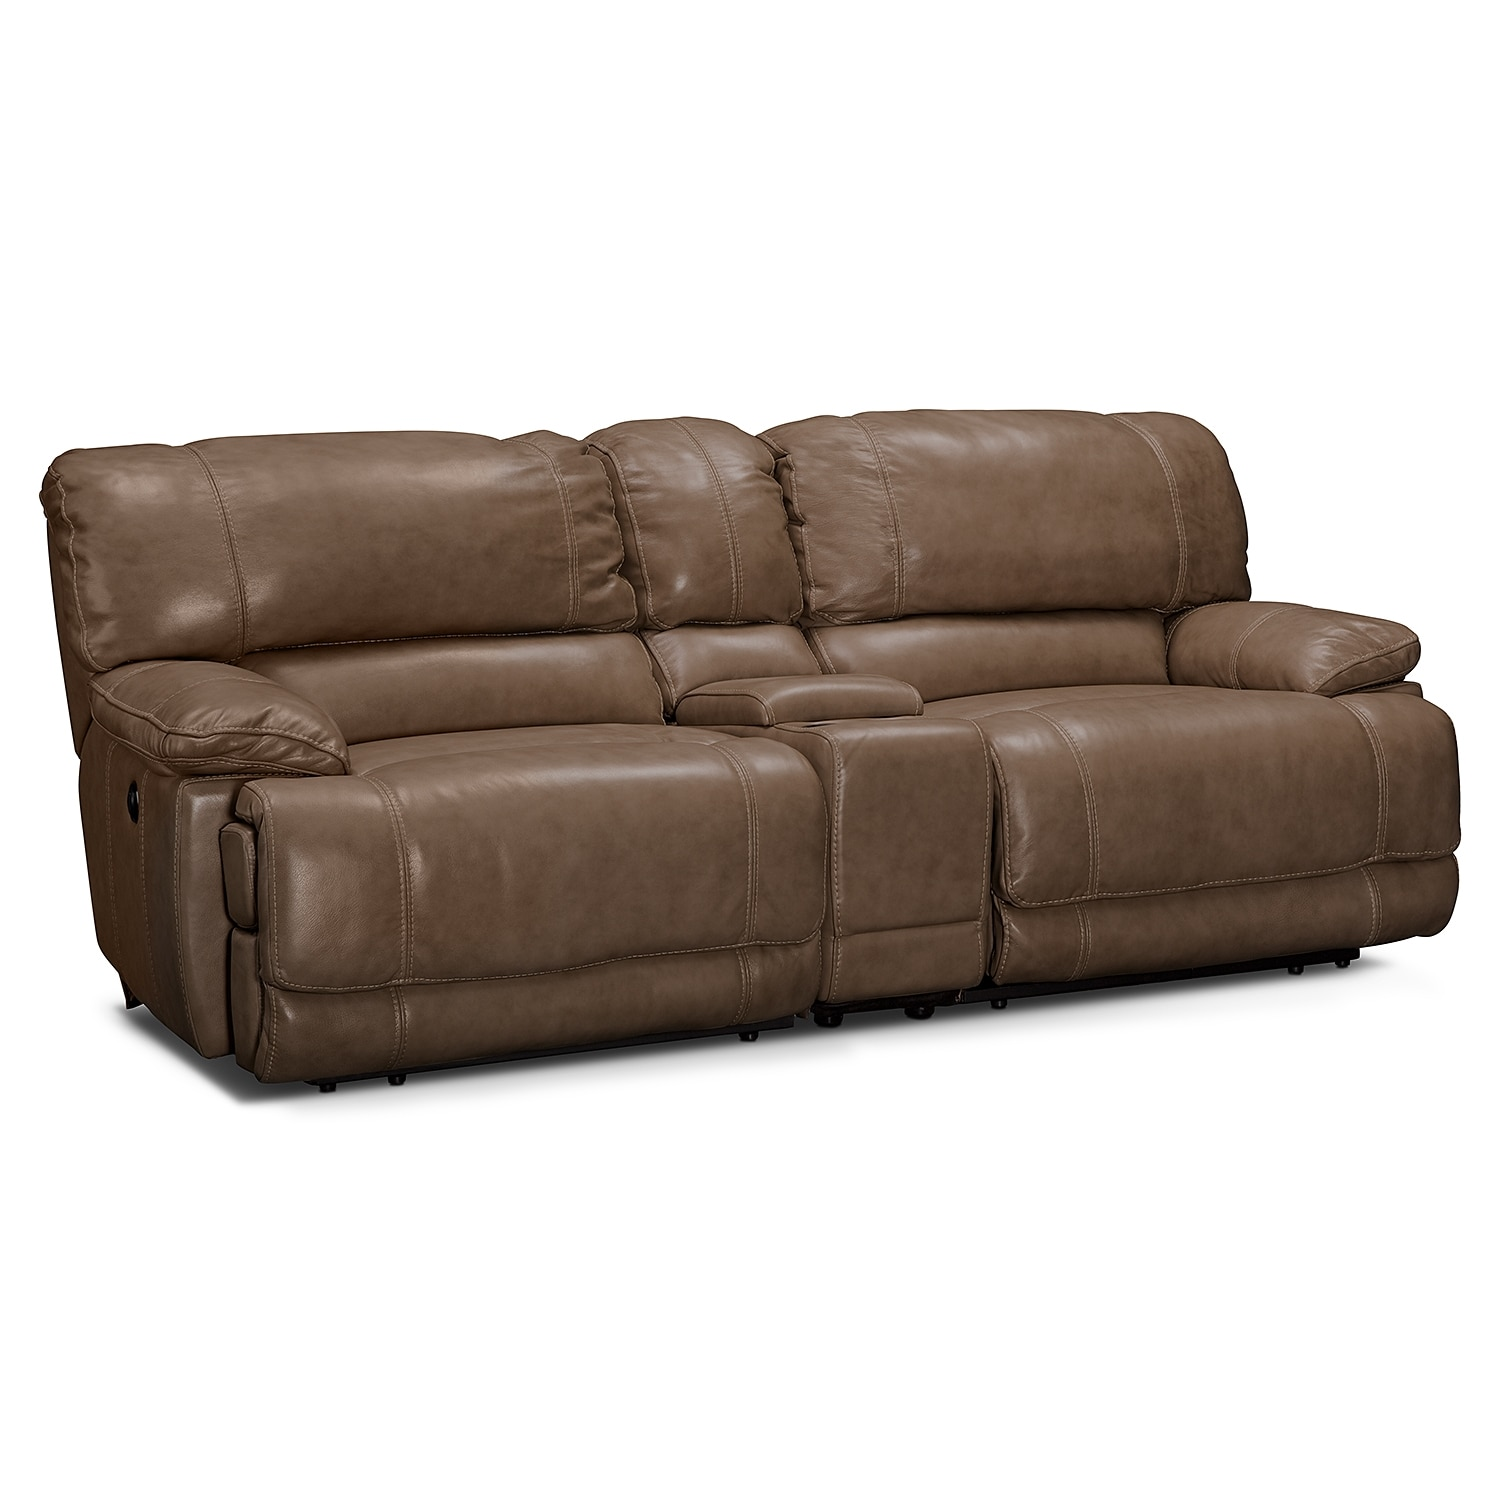 Living Room Furniture - St. Malo II 3 Pc. Power Reclining Sofa with Console